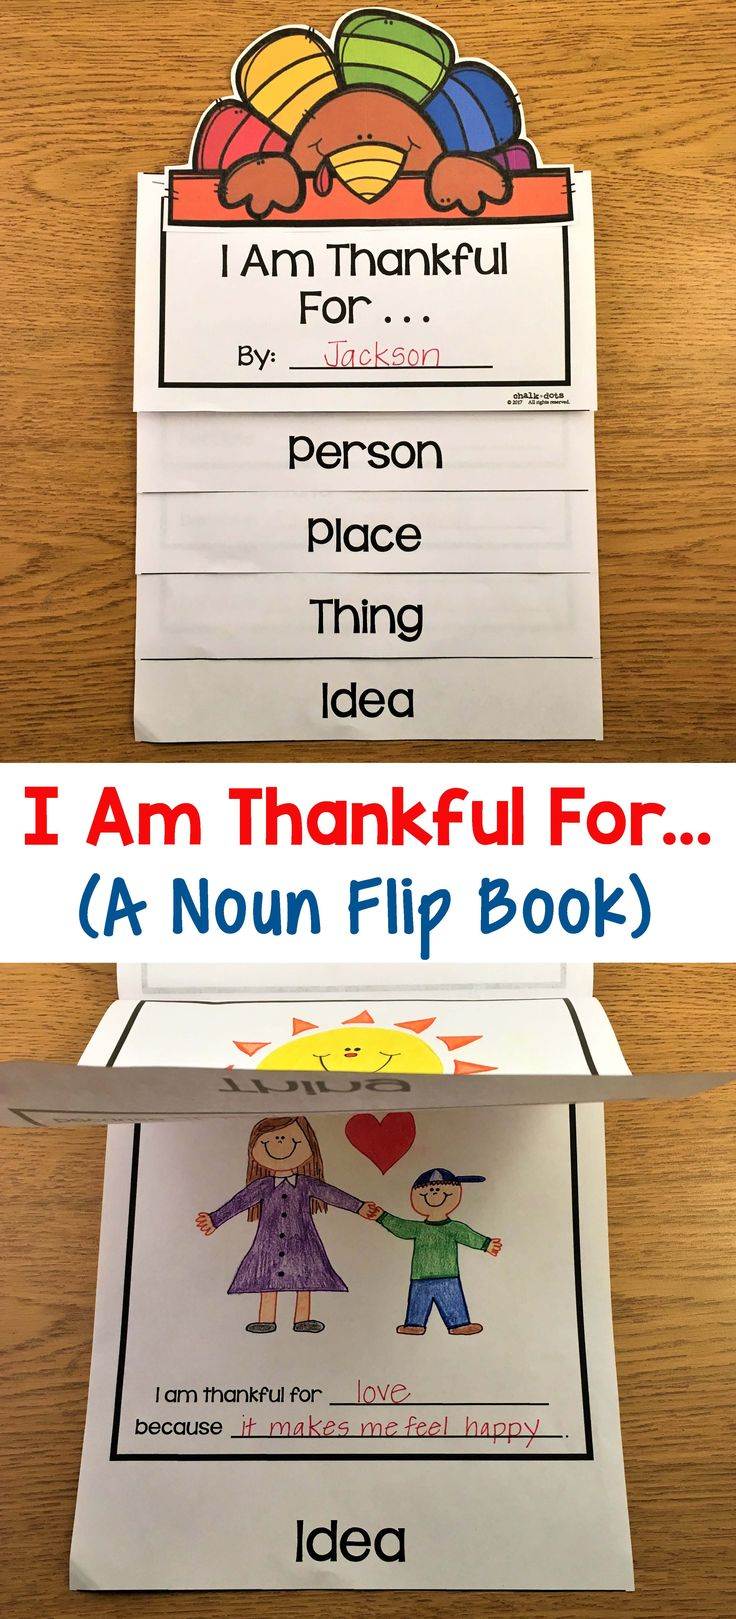 This cute Thanksgiving flip book not only helps your children express what they are thankful for, but it is also a great review on the definition of a noun! I have included two versions of this flip book: one where the children draw and label what they are thankful for and one where they also write a reason why they are thankful on each page. Your students will love taking their flip books home to share what they are thankful for with their families!